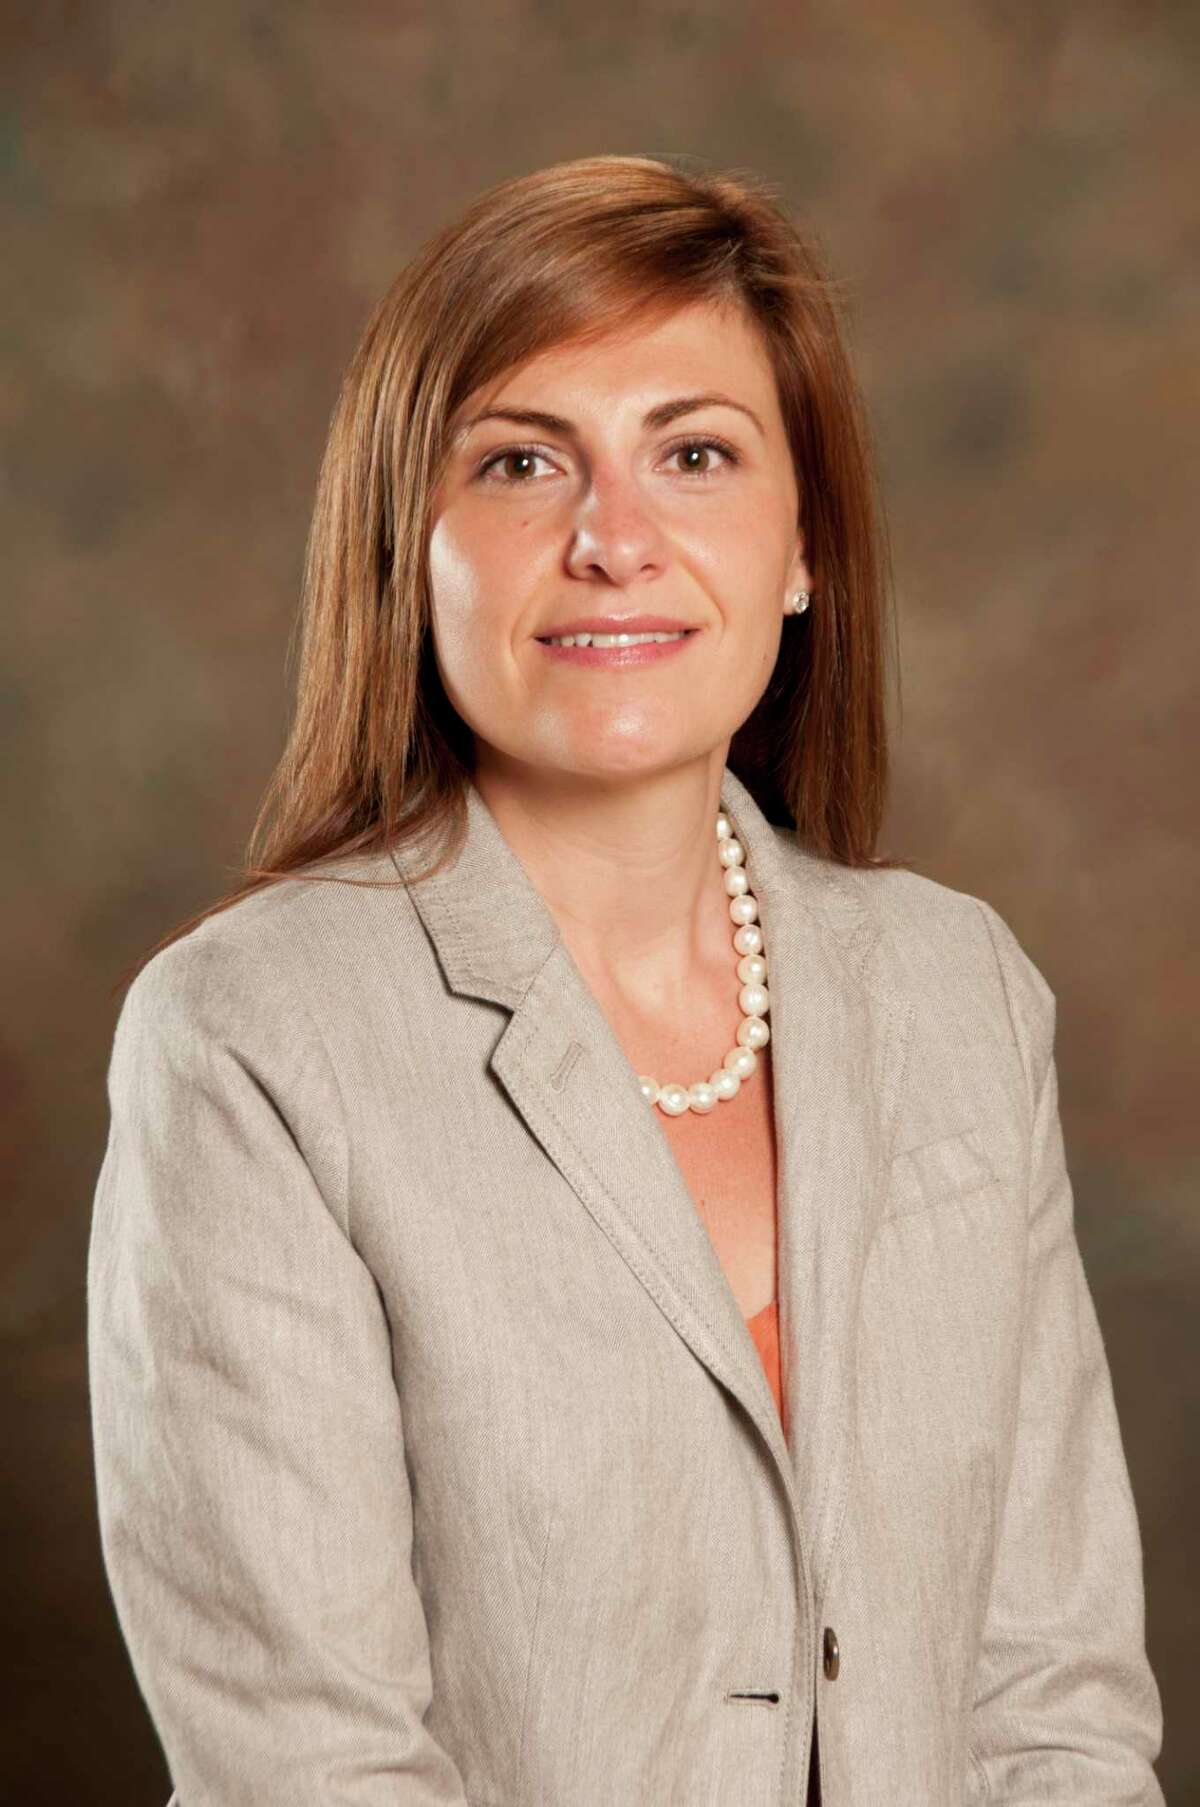 Jessica A. Slippen is an attorney with Stratford-based Mitchell and Sheahan. She handles employment litigation matters before state and federal courts and administrative agencies and can be reached at 203-873-0240 or JSlippen@mitchellandsheahan.com.